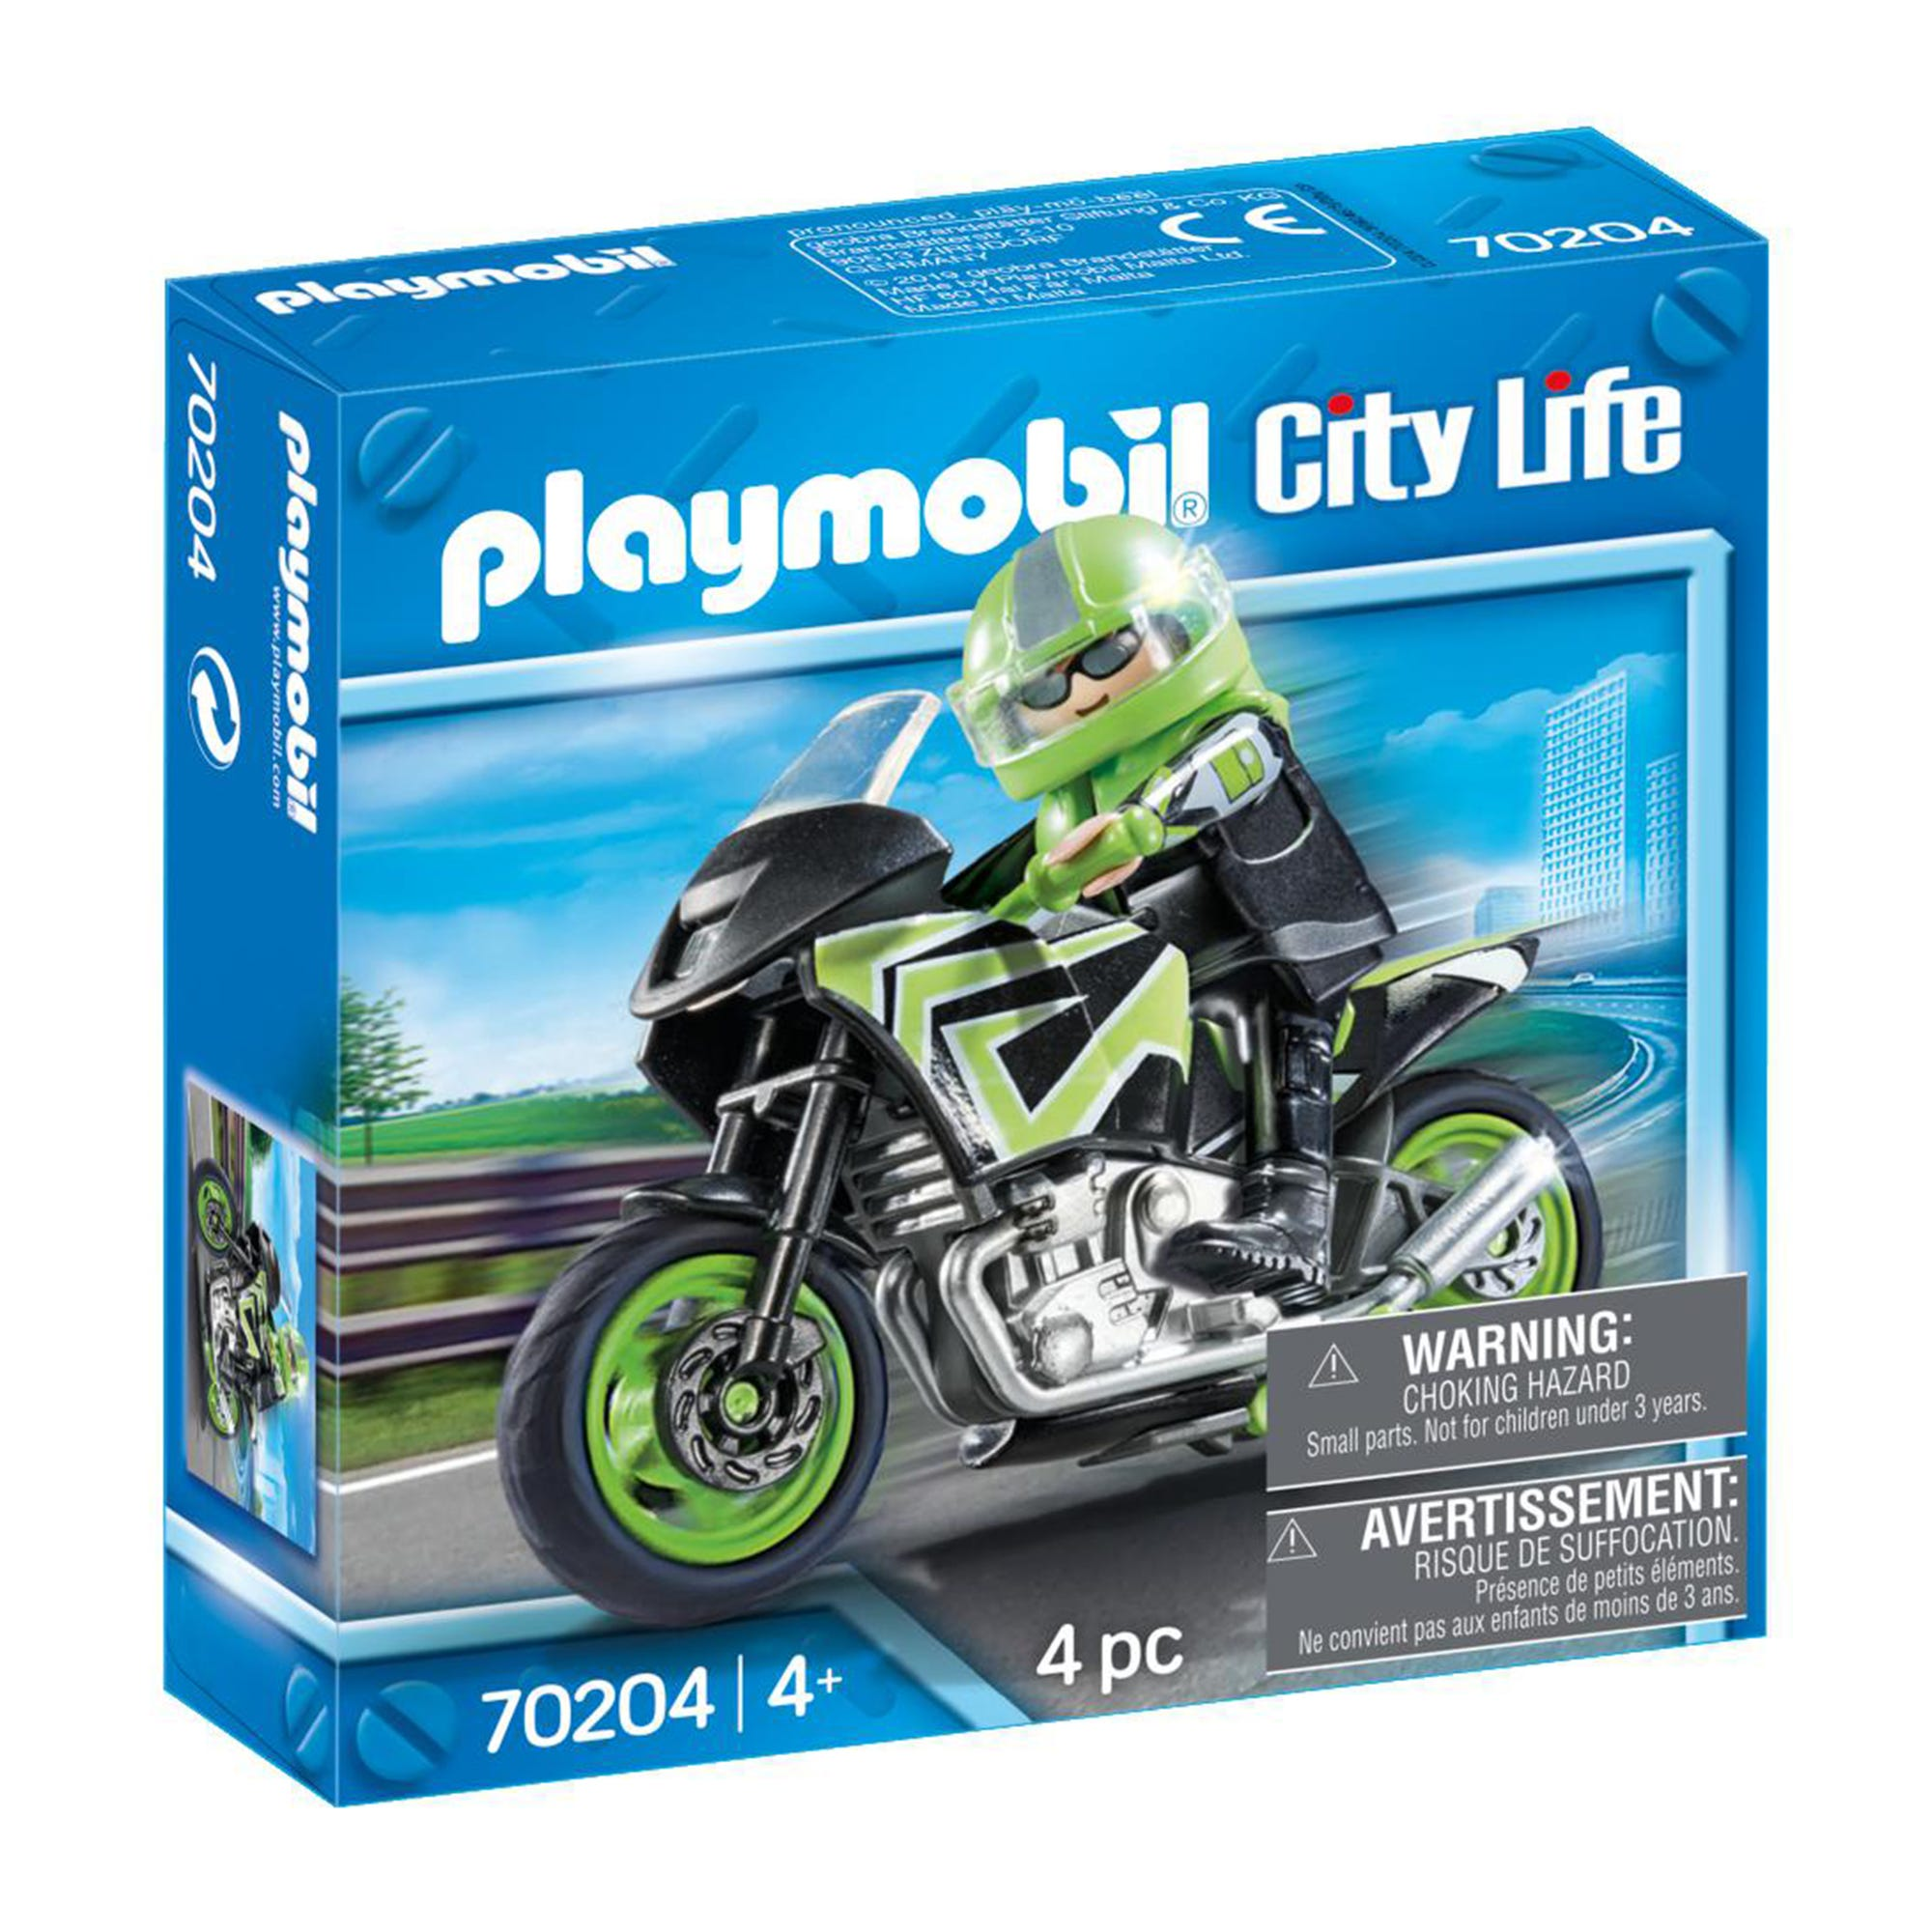 Playmobil 70204 City Life Motorcycle With Rider